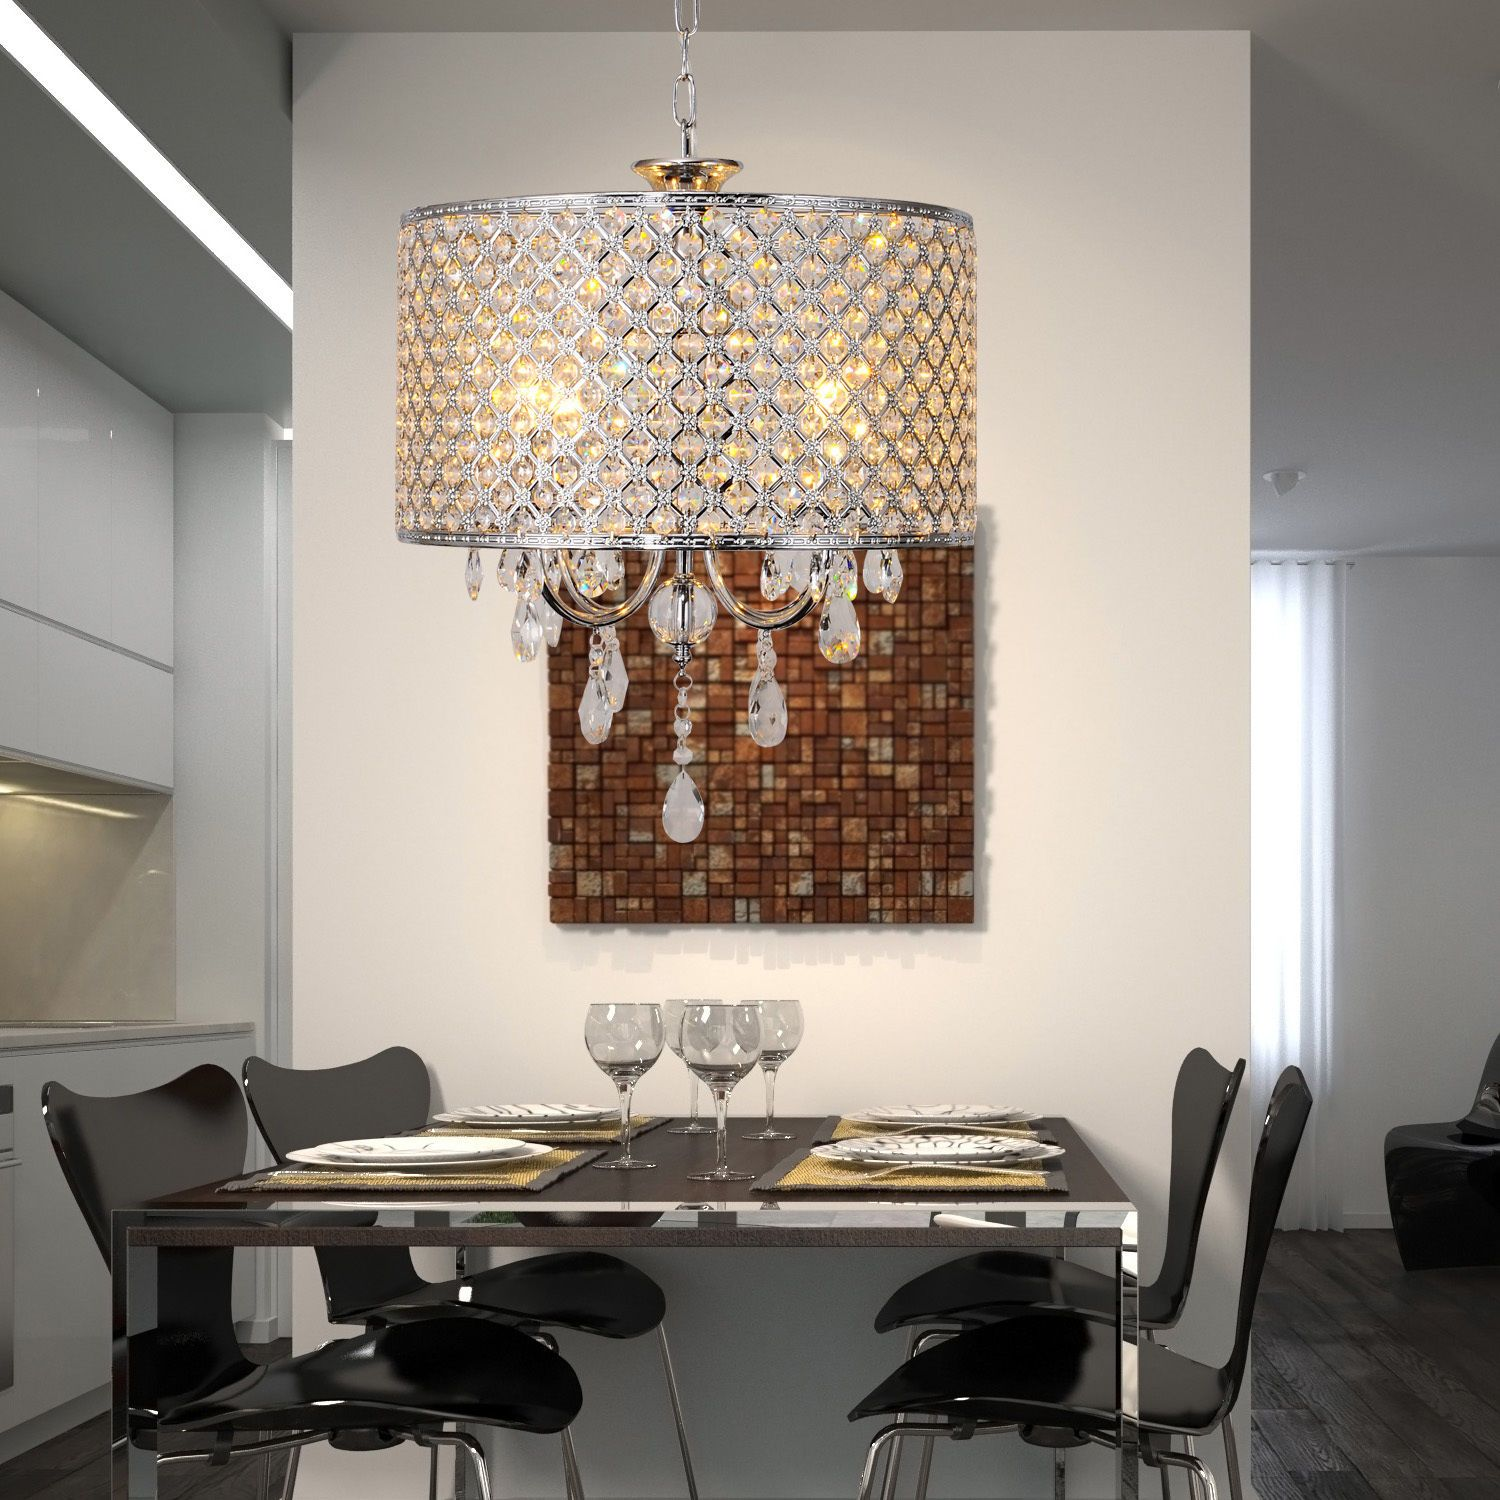 Modern 4 lights Crystal Chandelier Pendant Fixture Drum Lamp Shade